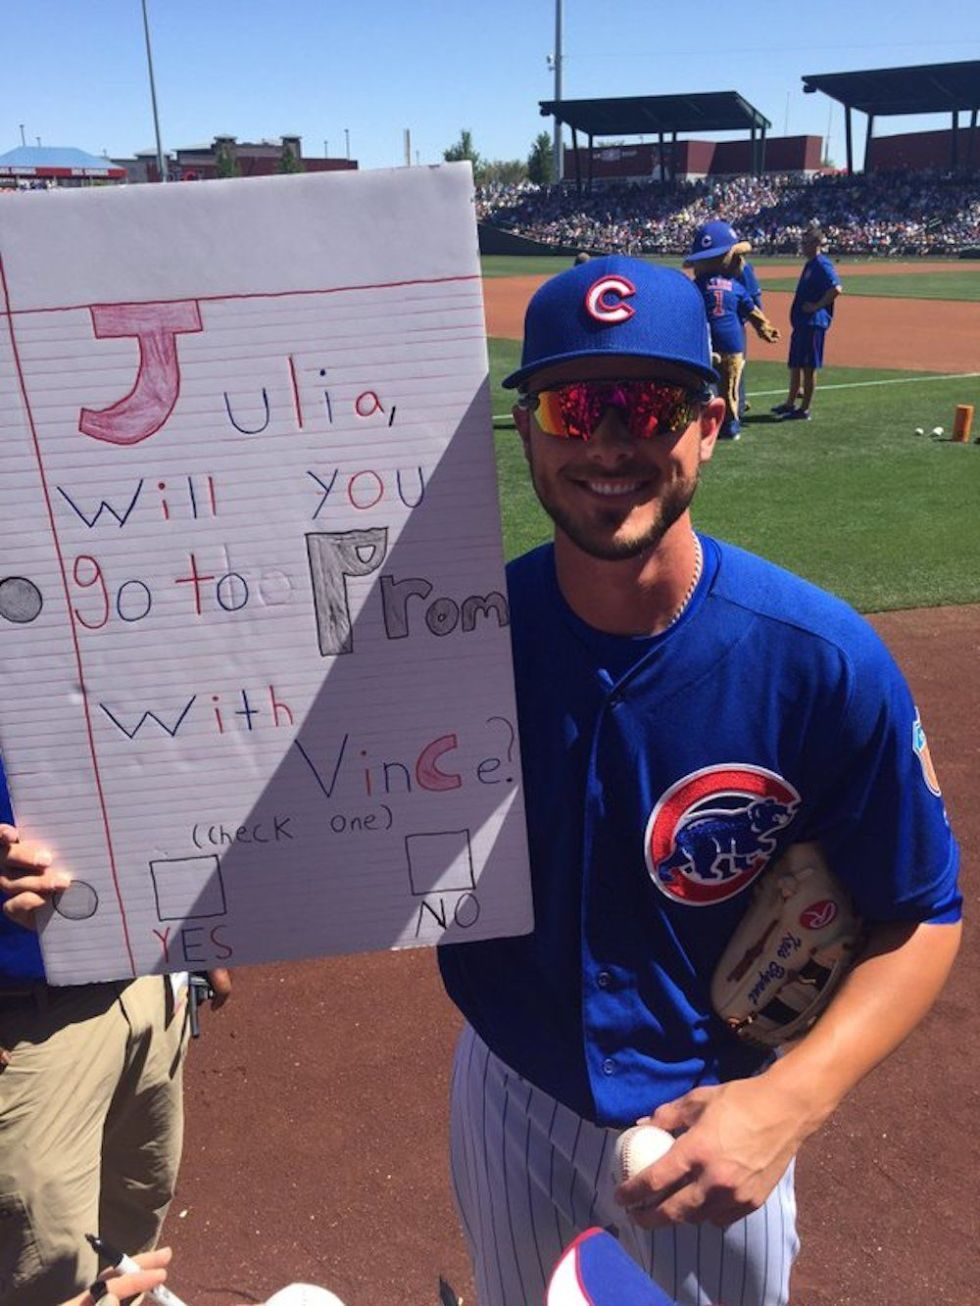 A Pro Baseball Player Made This Couple's Promposal Go Viral